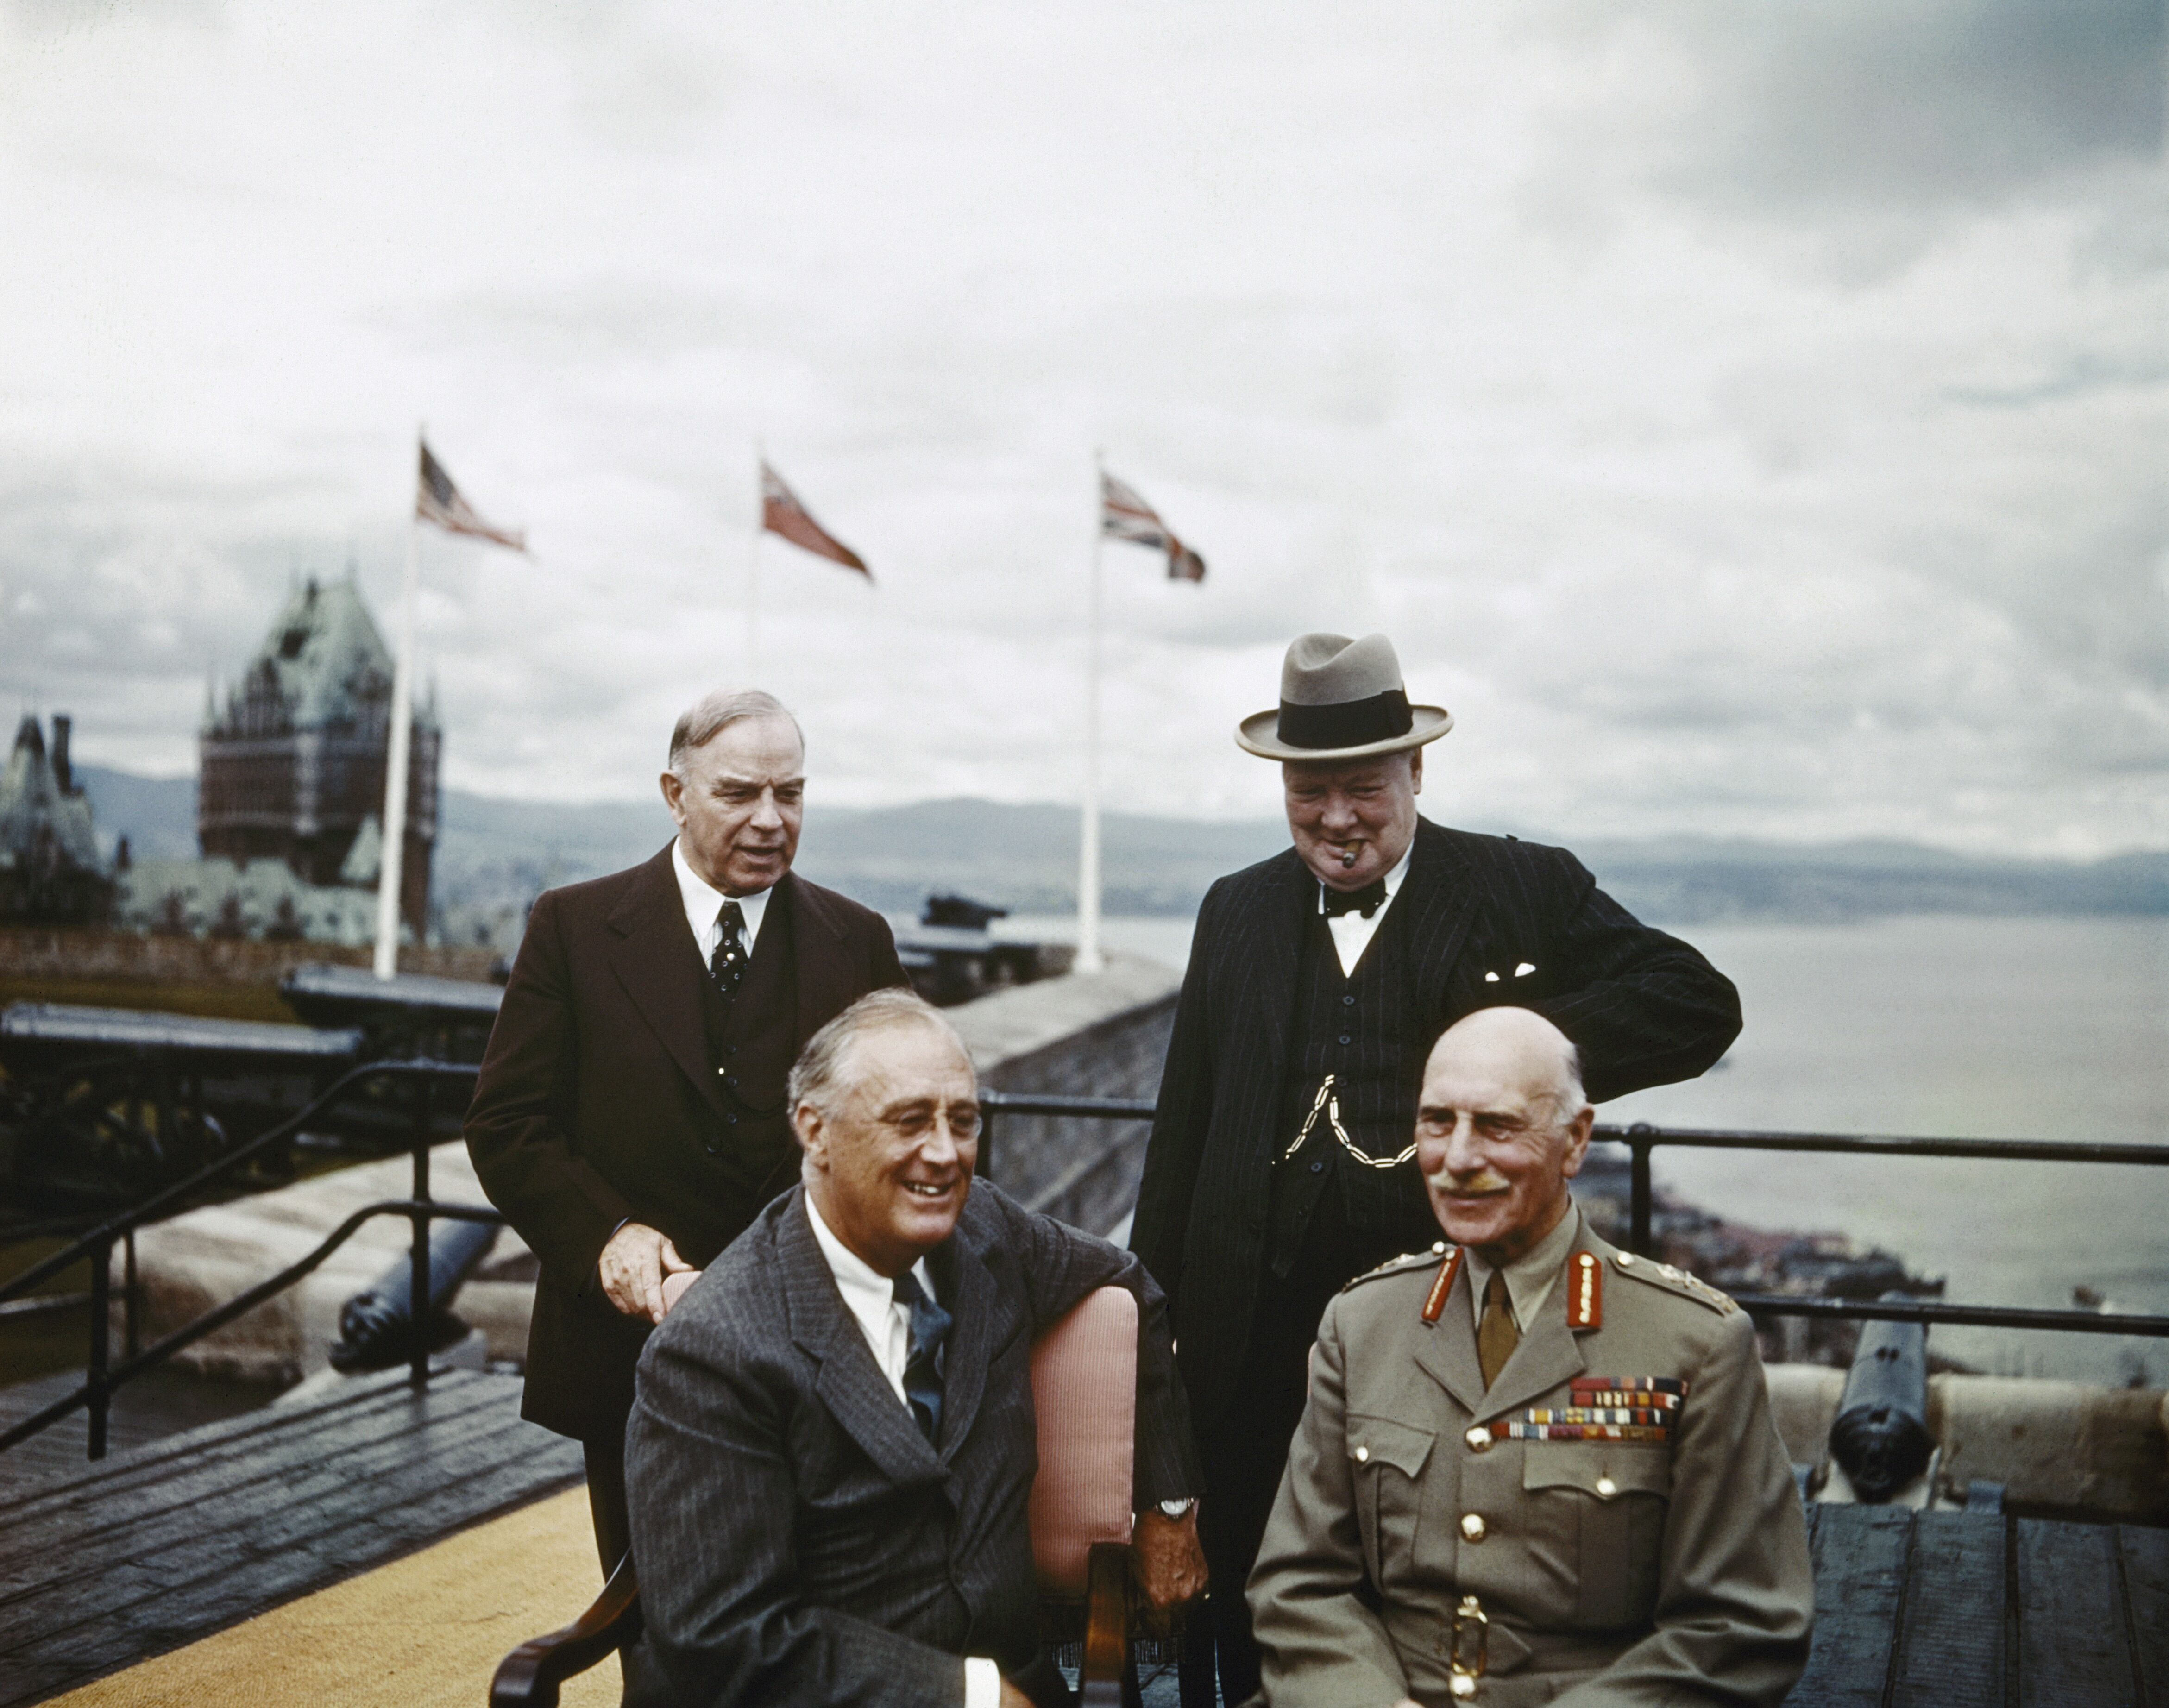 ... Franklin Roosevelt, and the Earl of Athlone (left-to-right) at the  First Quebec Conference, a secret military conference held in World War II.